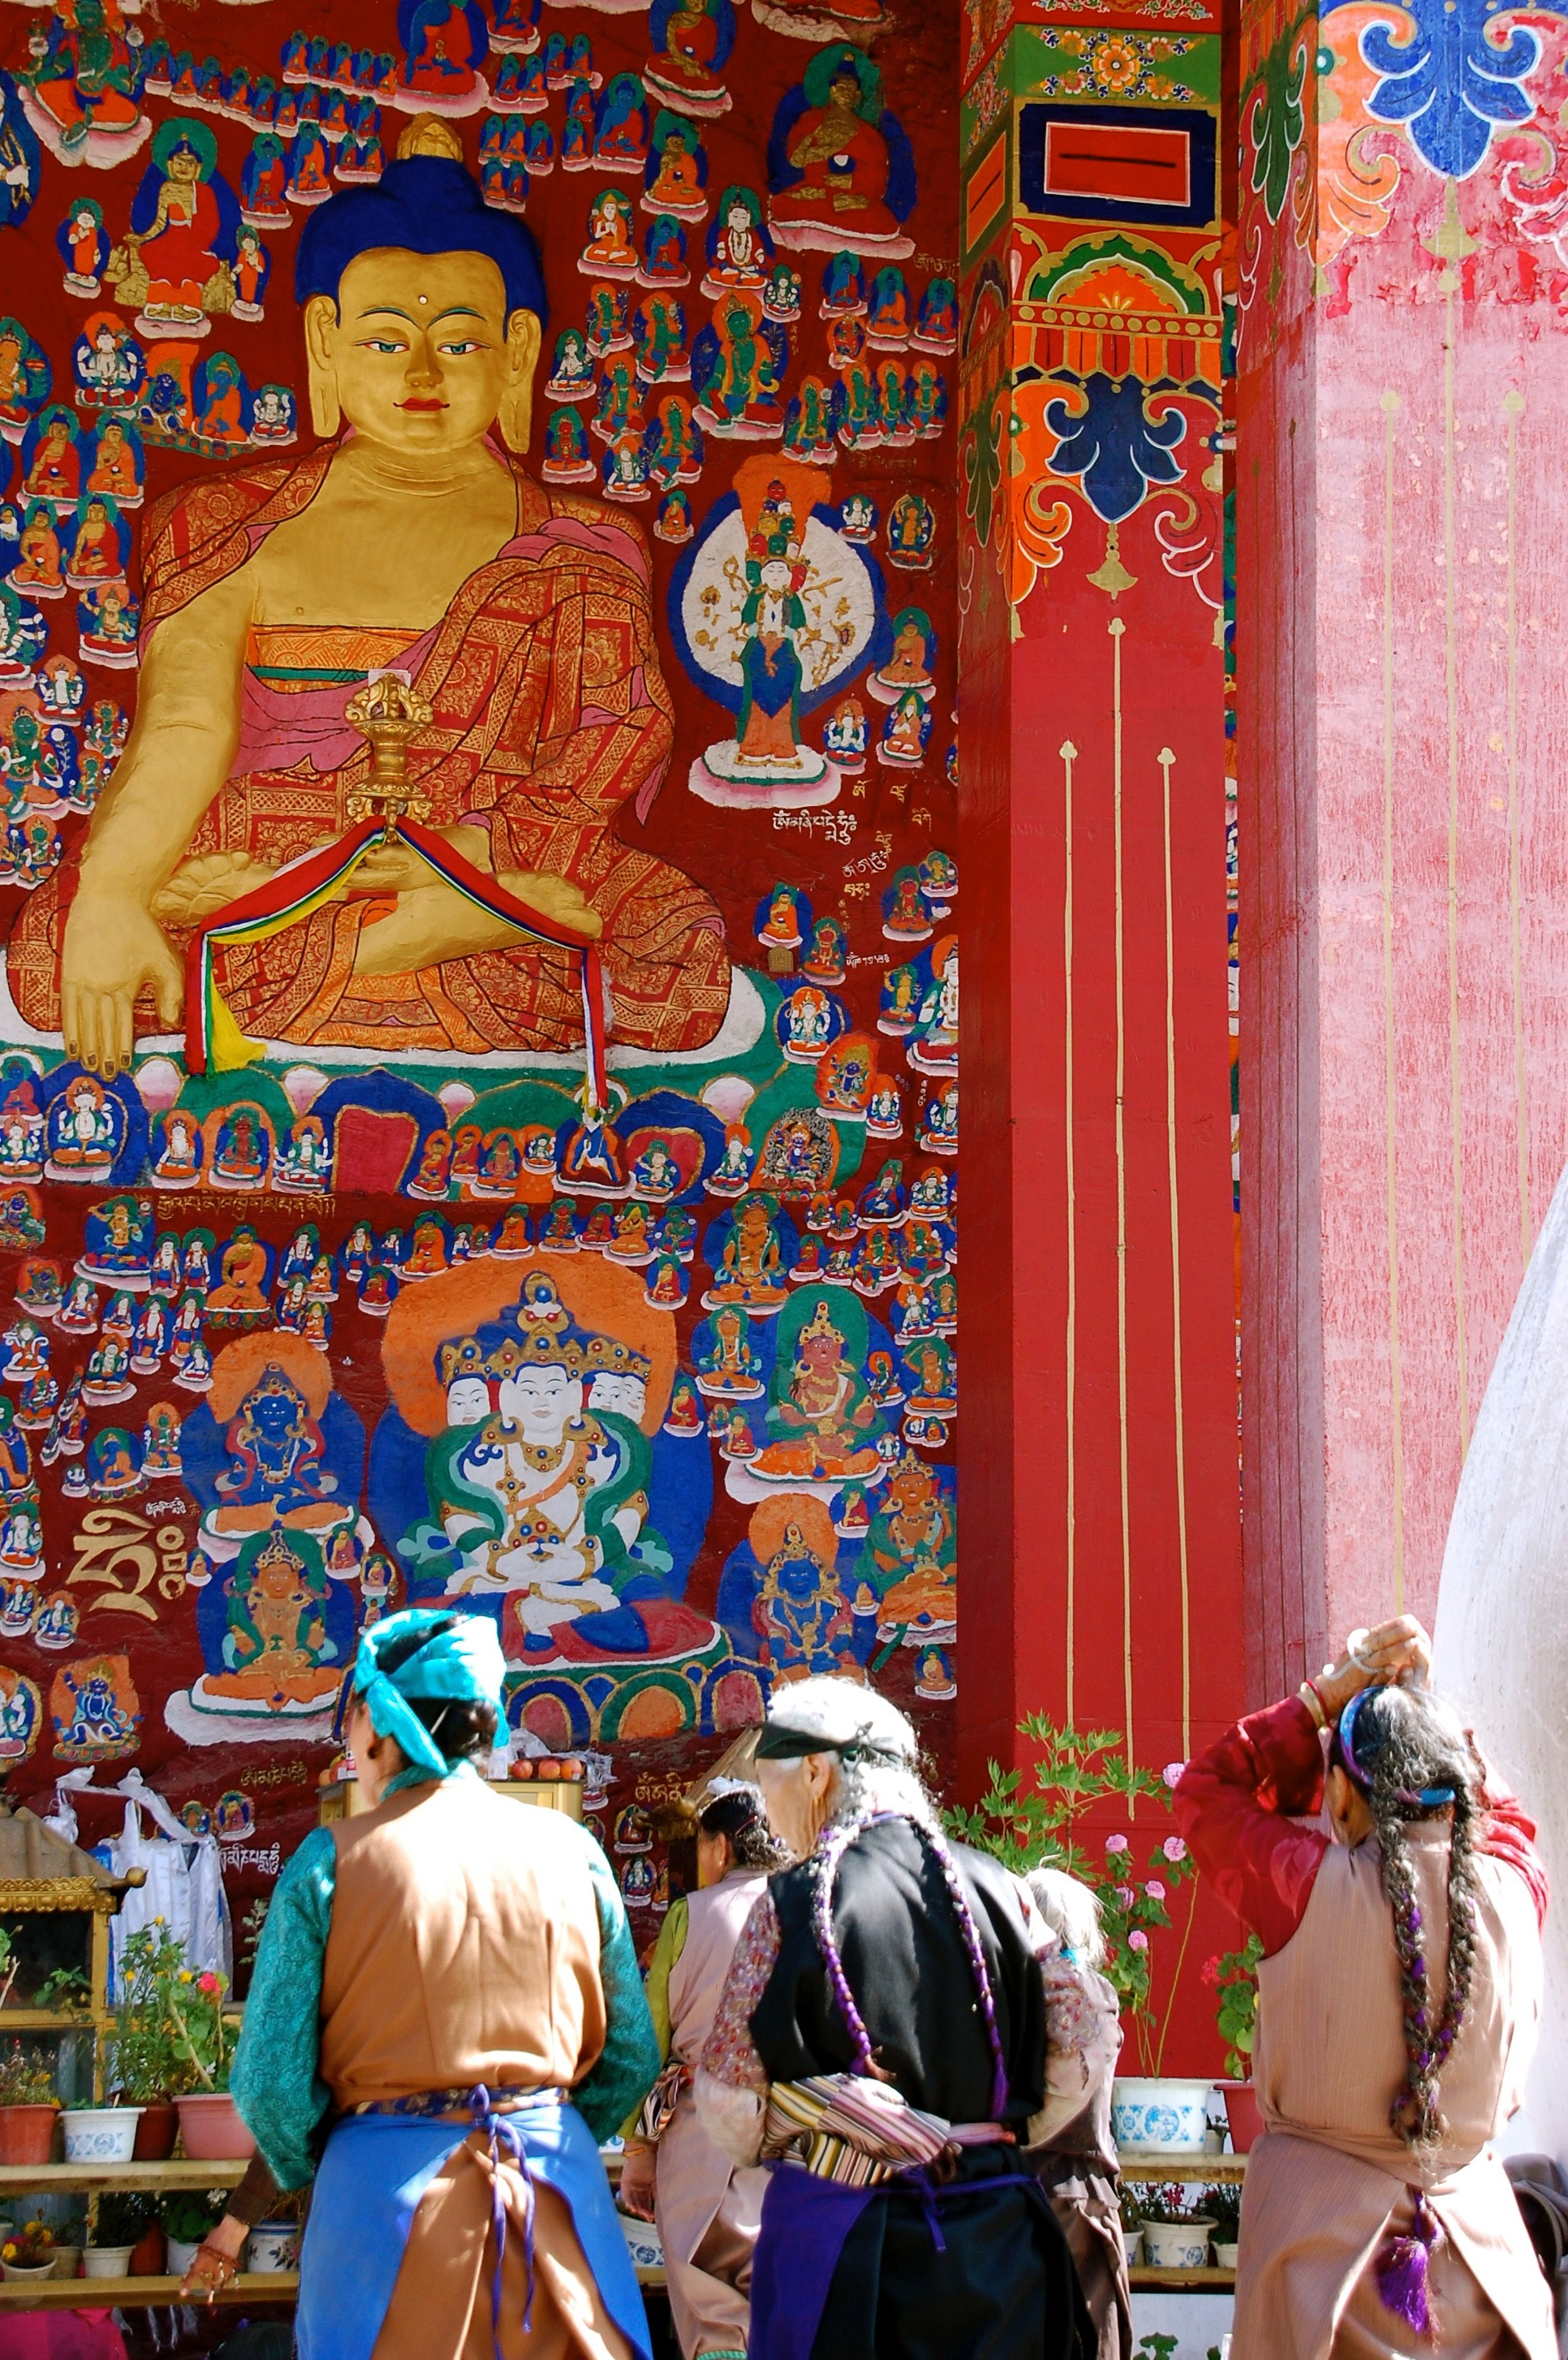 Devotees make prostrations at the 10,000 Buddha Wall, where in past times bodies of the deceased whose families could not afford a proper burial would be left for the monks to perform last rites (Lhasa, Tibet)